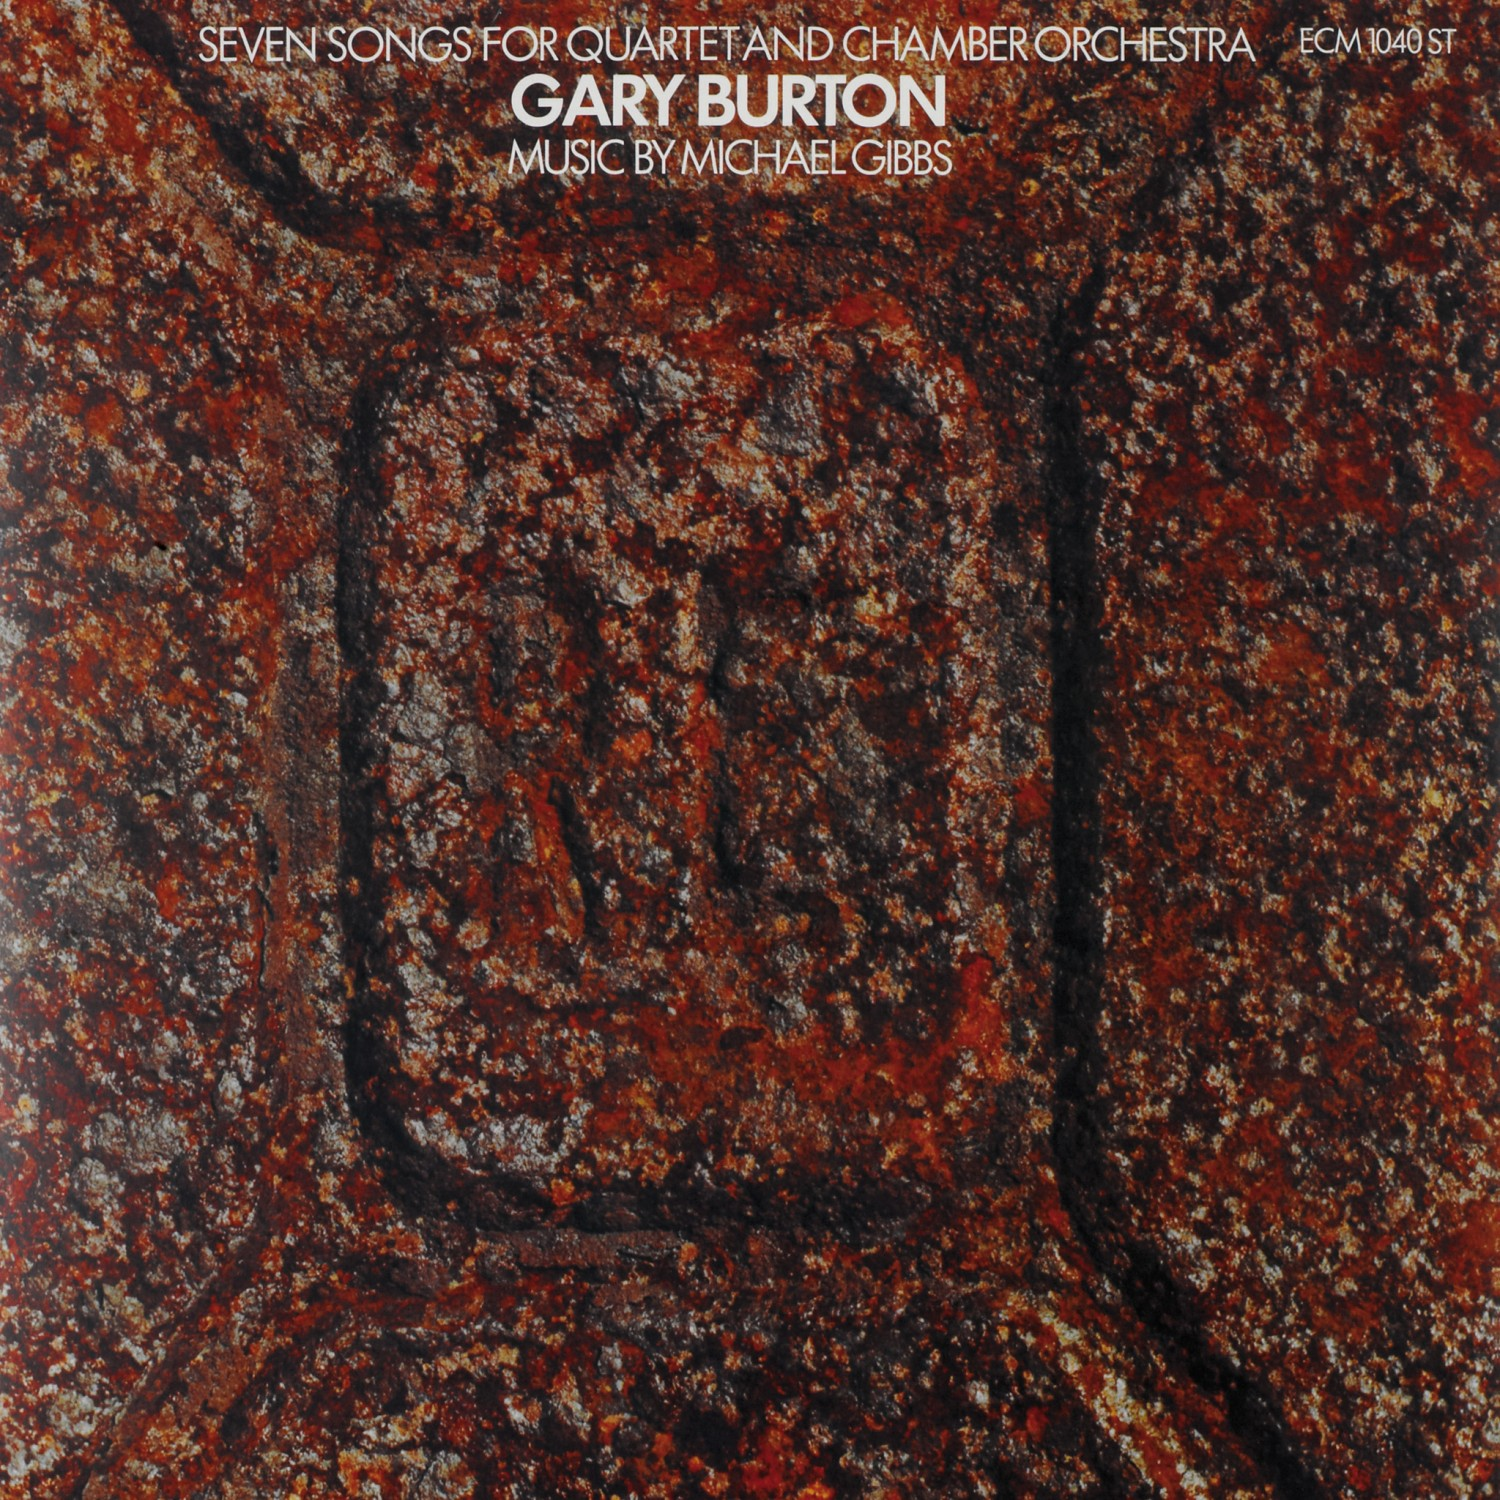 Schallplatte Gary Burton - Seven Songs for Quartet and Chamber Orchestra (ECM) im Test, Bild 1